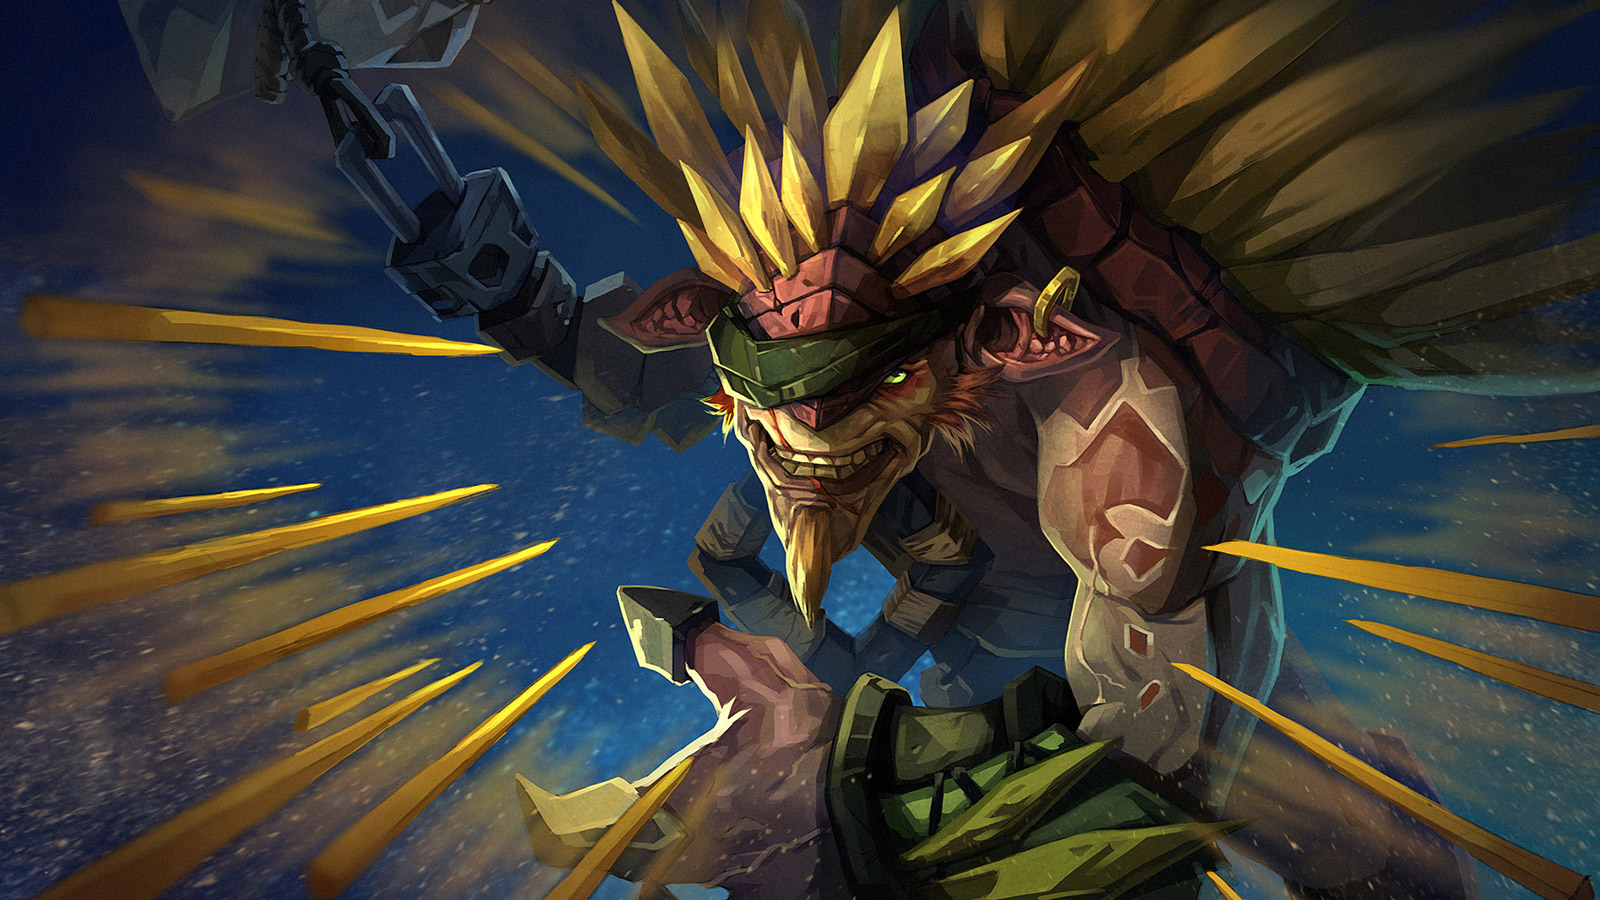 Free Dota 2 Wallpaper in 1600x900